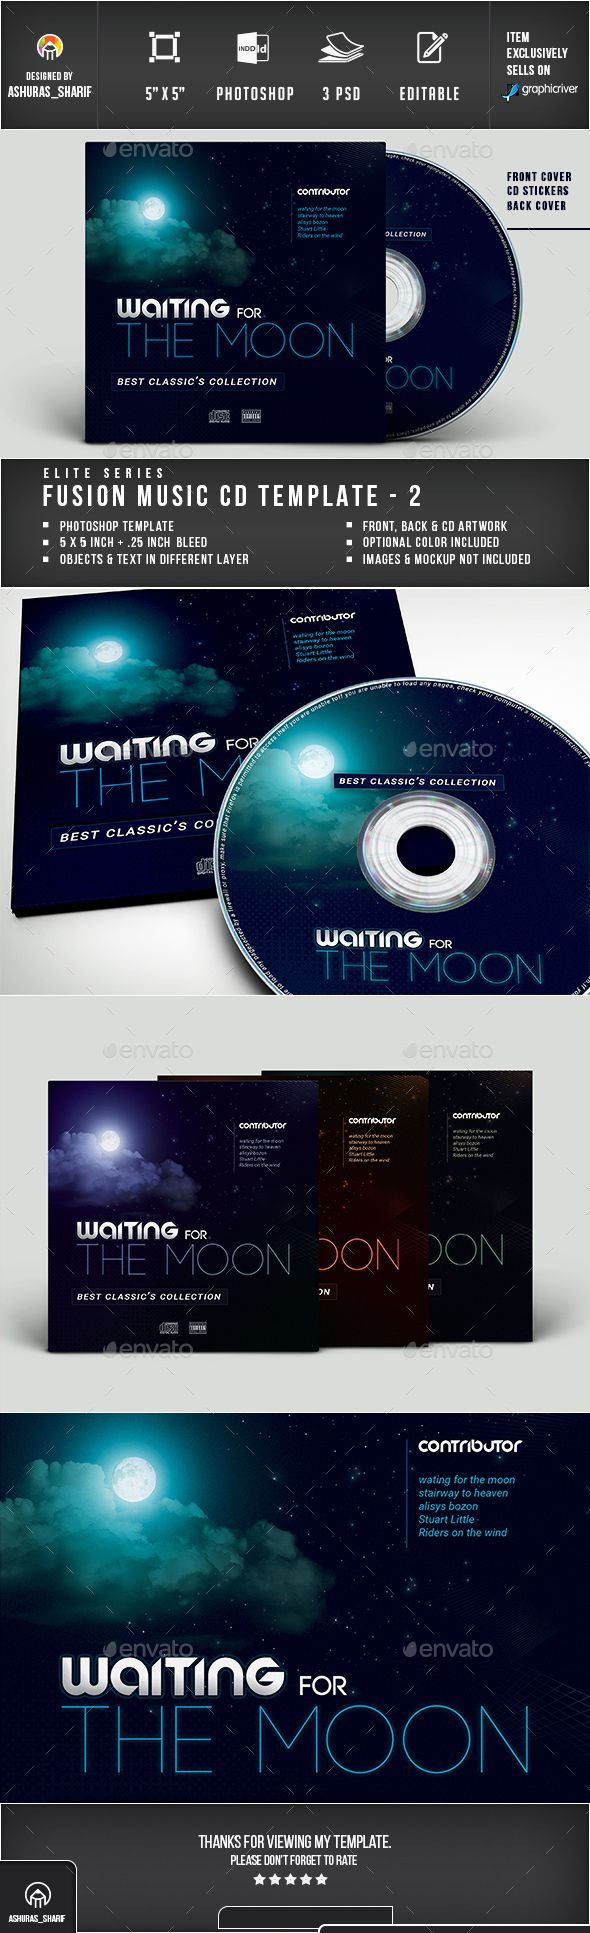 006 Impressive Cd Cover Design Template Photoshop Example  Label Psd FreeFull